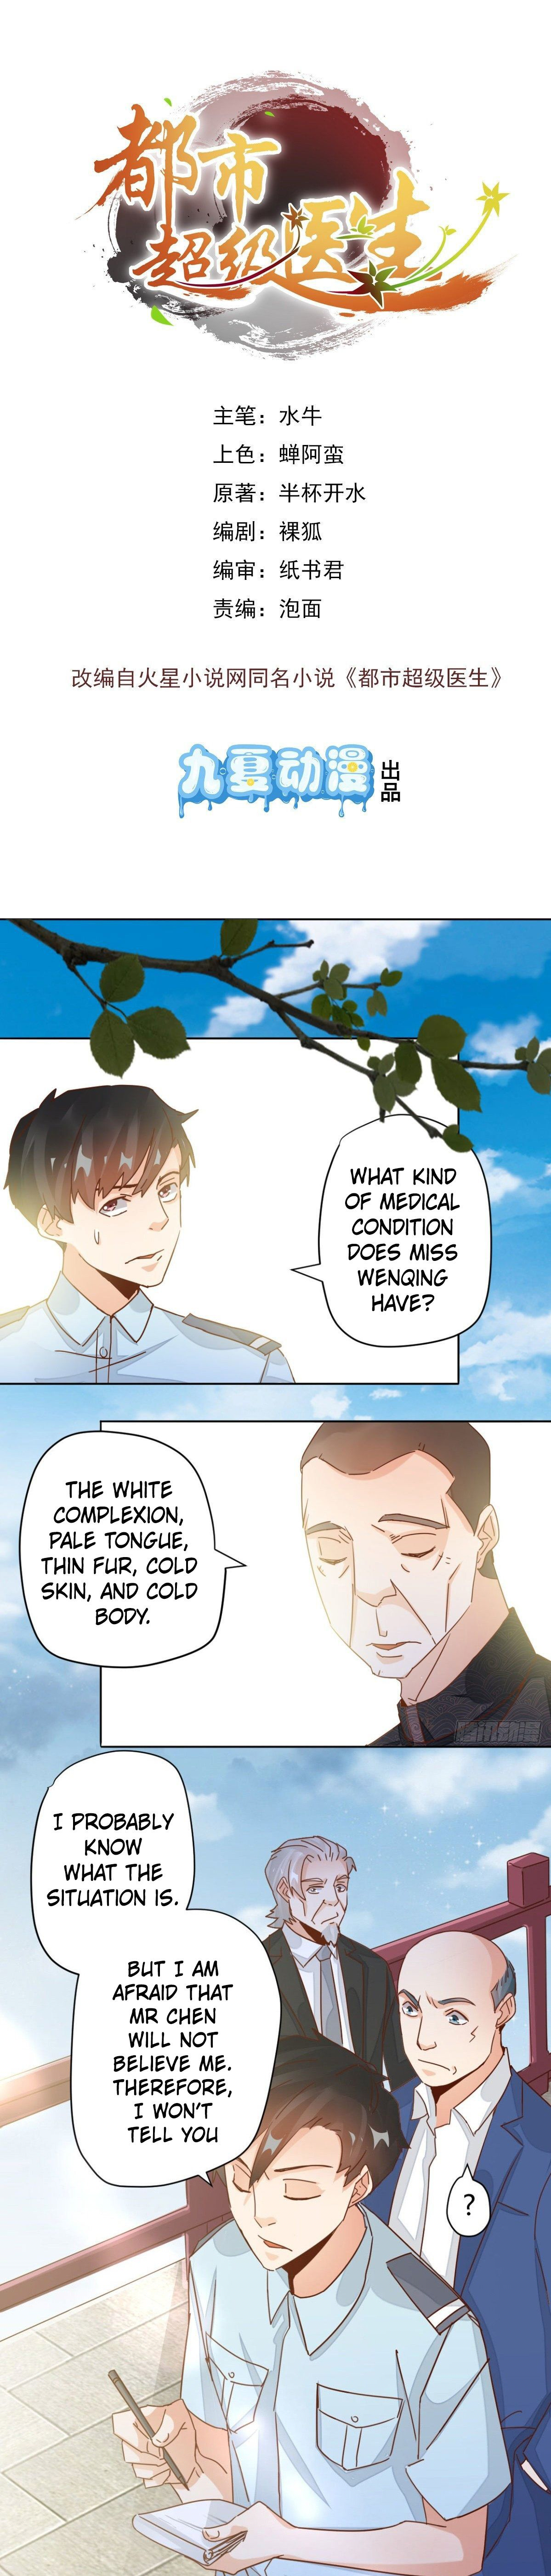 Urban Super Doctor - chapter 12 - #2